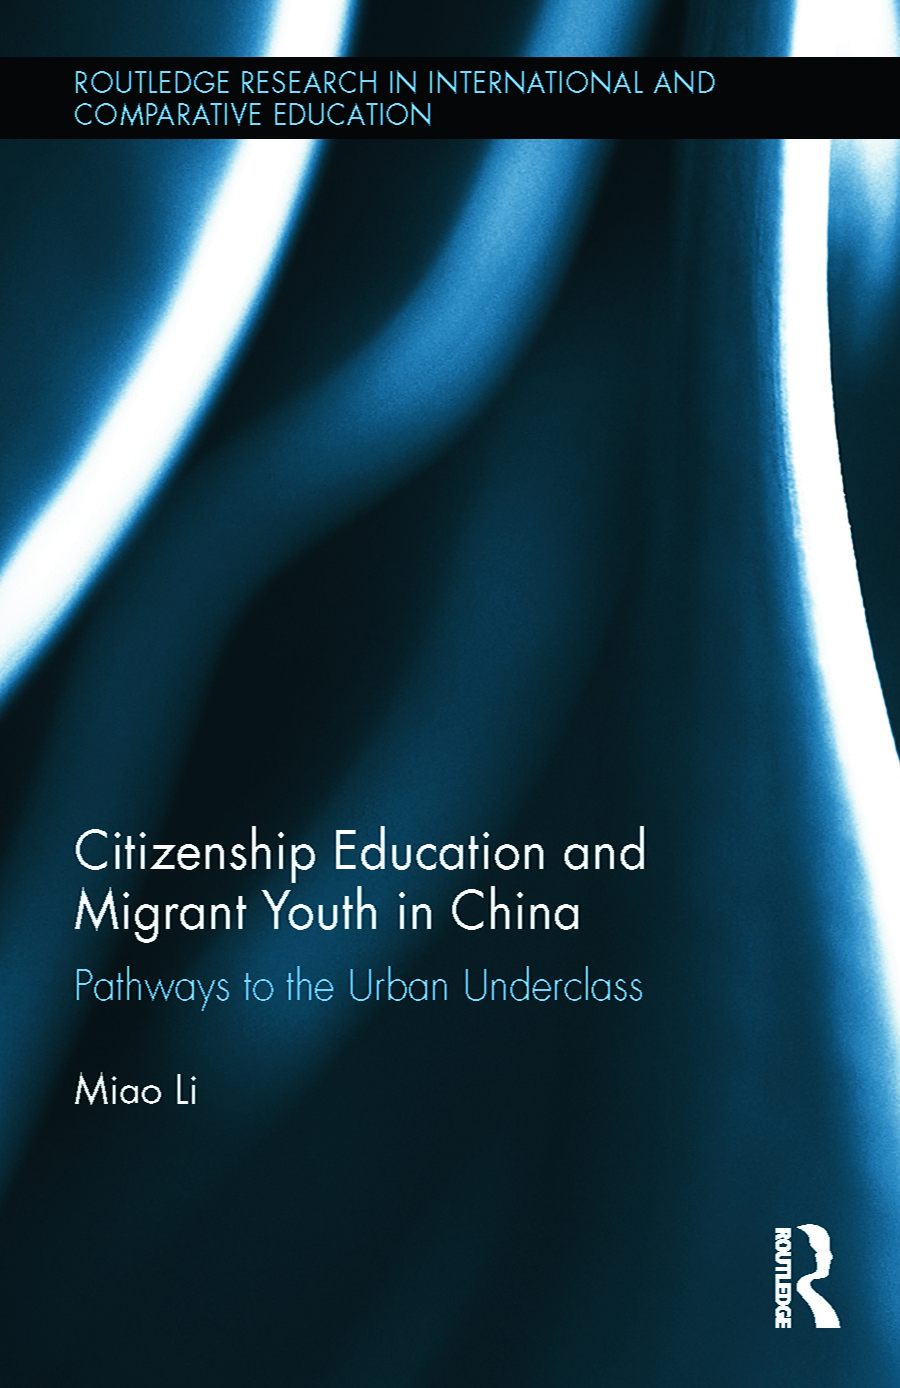 Citizenship Education and Migrant Youth in China: Pathways to the Urban Underclass book cover